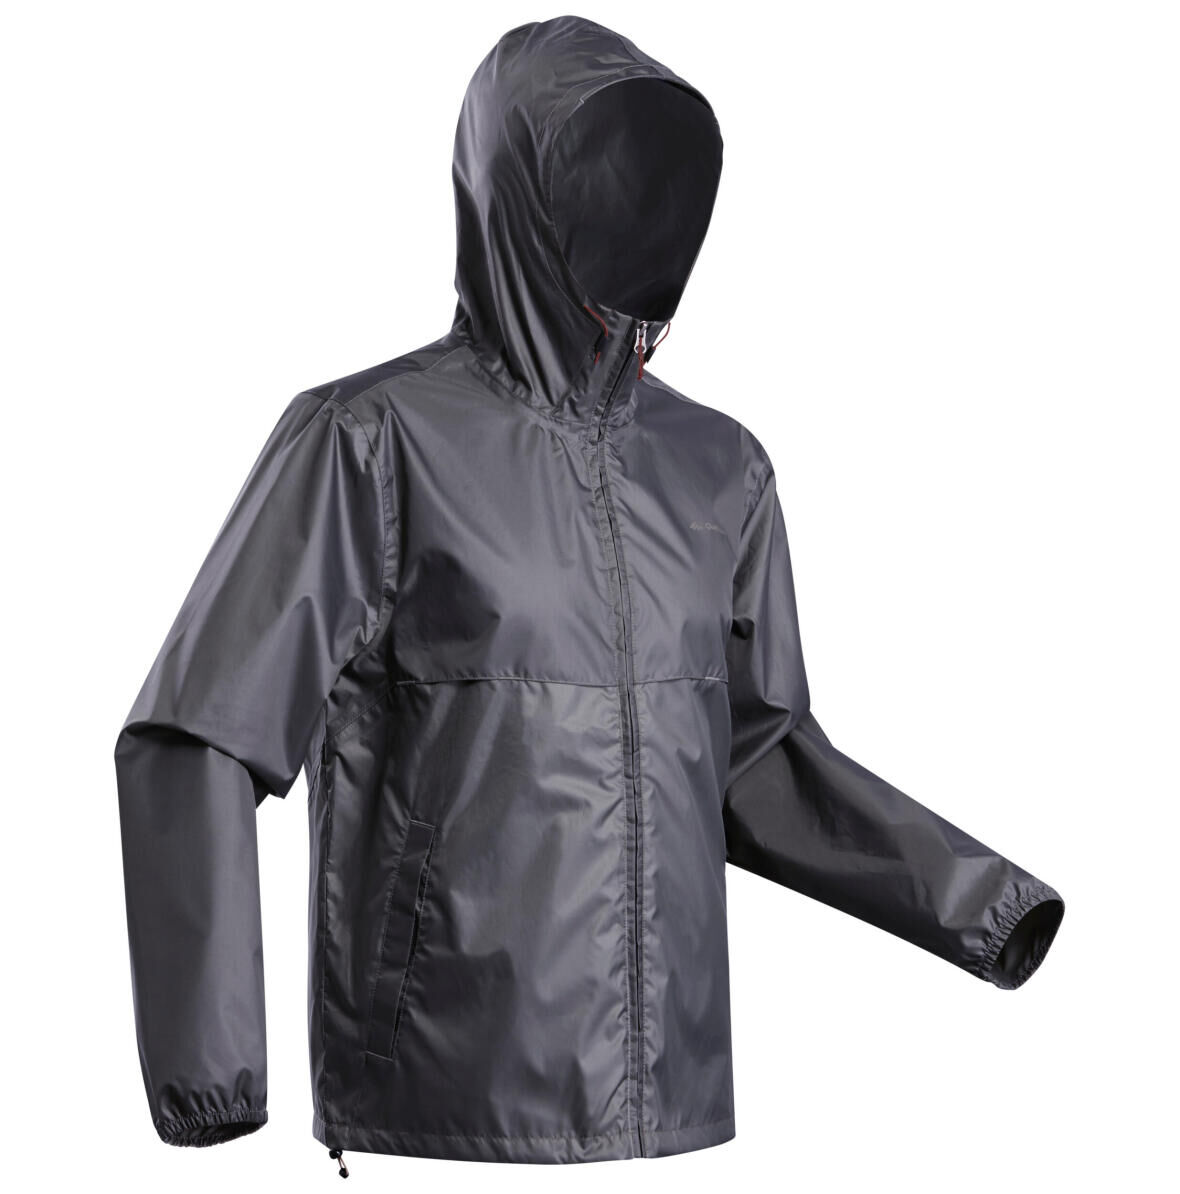 3 Wet Weather Products for Sports or Everyday Use